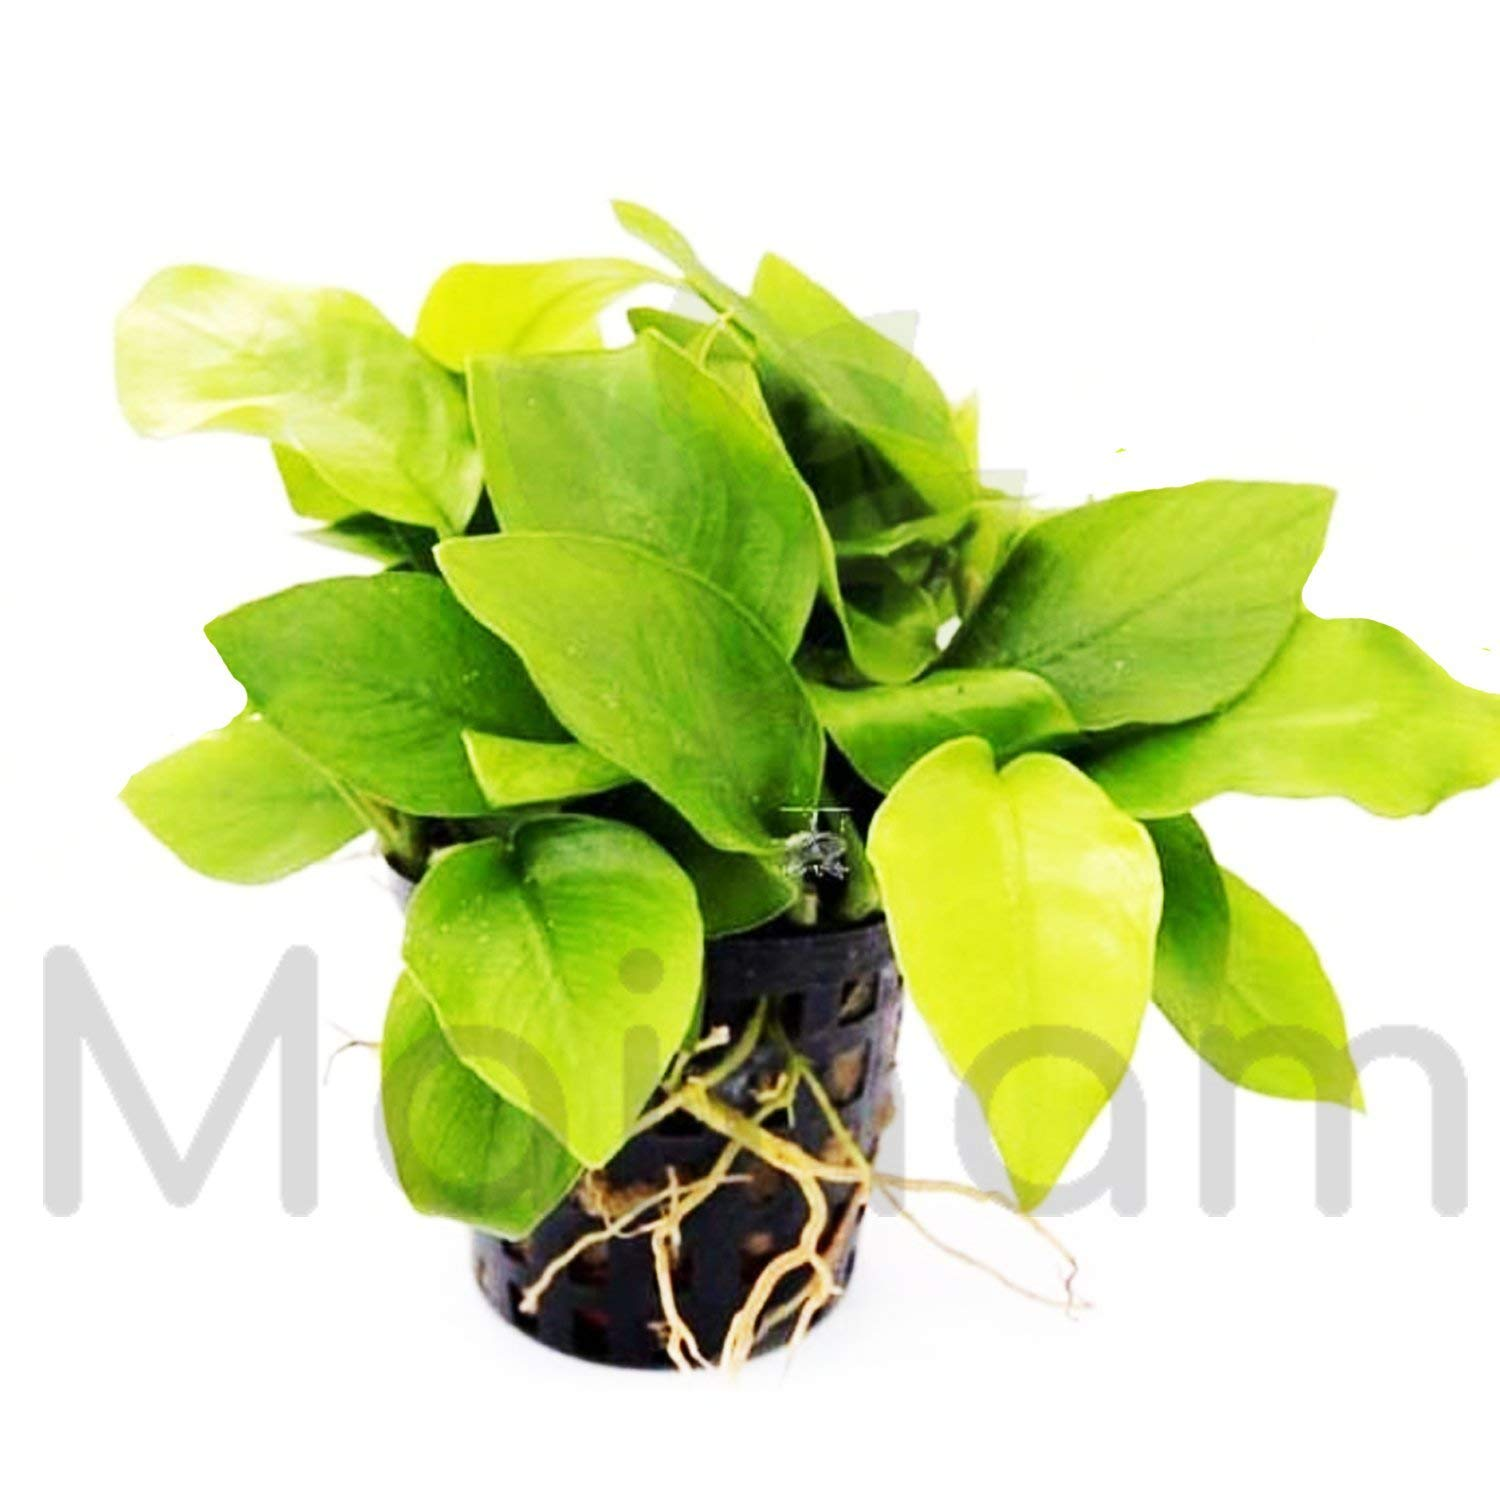 Mainam Anubias Nana Golden Leaves Potted Freshwater Beginner Live Aquarium Decorations Plants For Fish, Shrimp and more